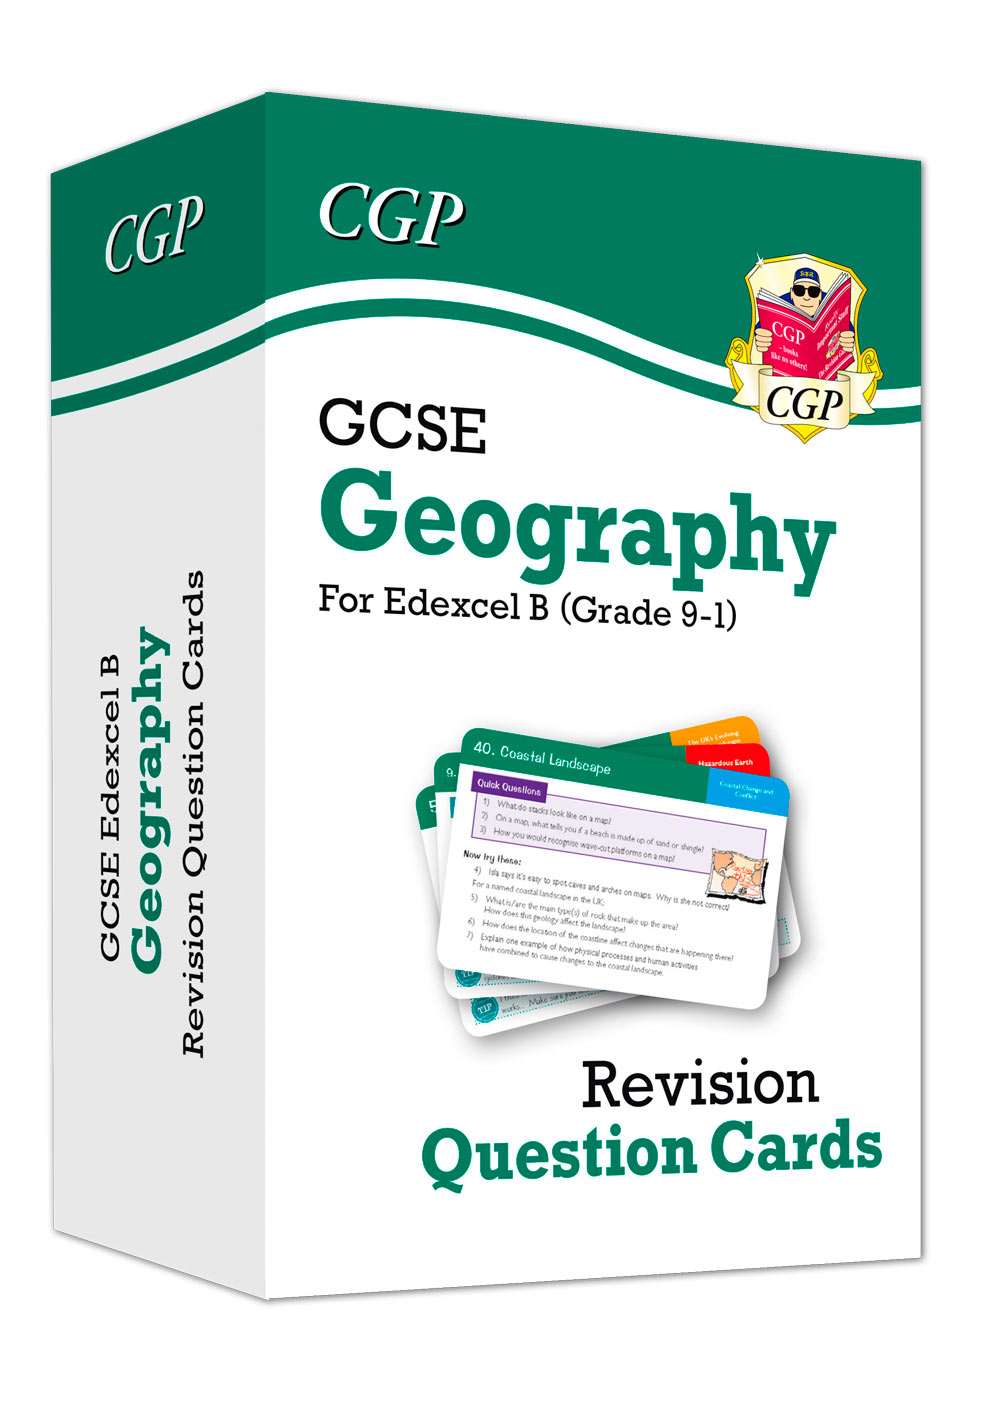 GEF41 - New Grade 9-1 GCSE Geography Edexcel B Revision Question Cards